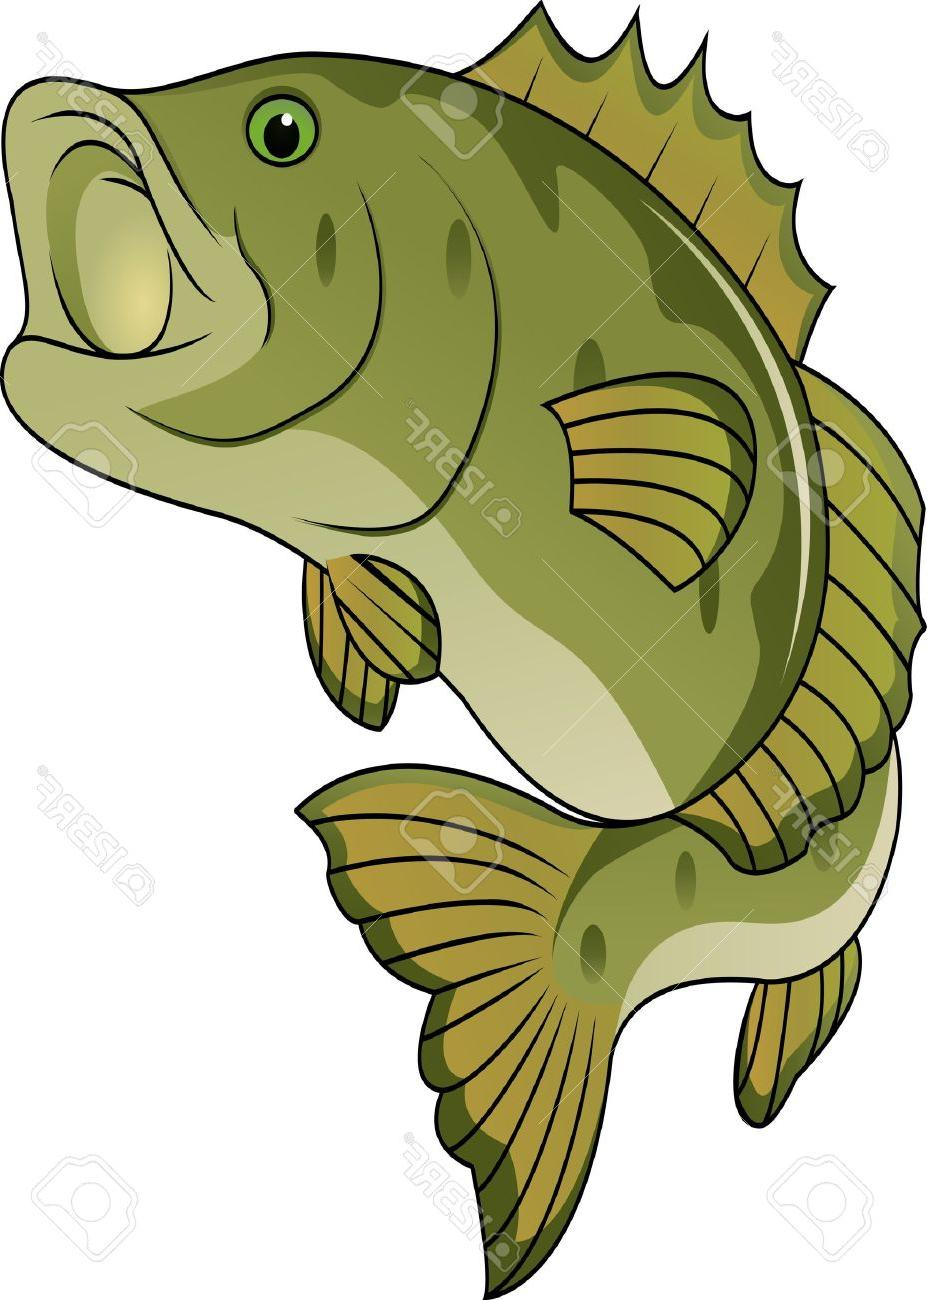 Fishing Pictures Cartoon | Free download on ClipArtMag